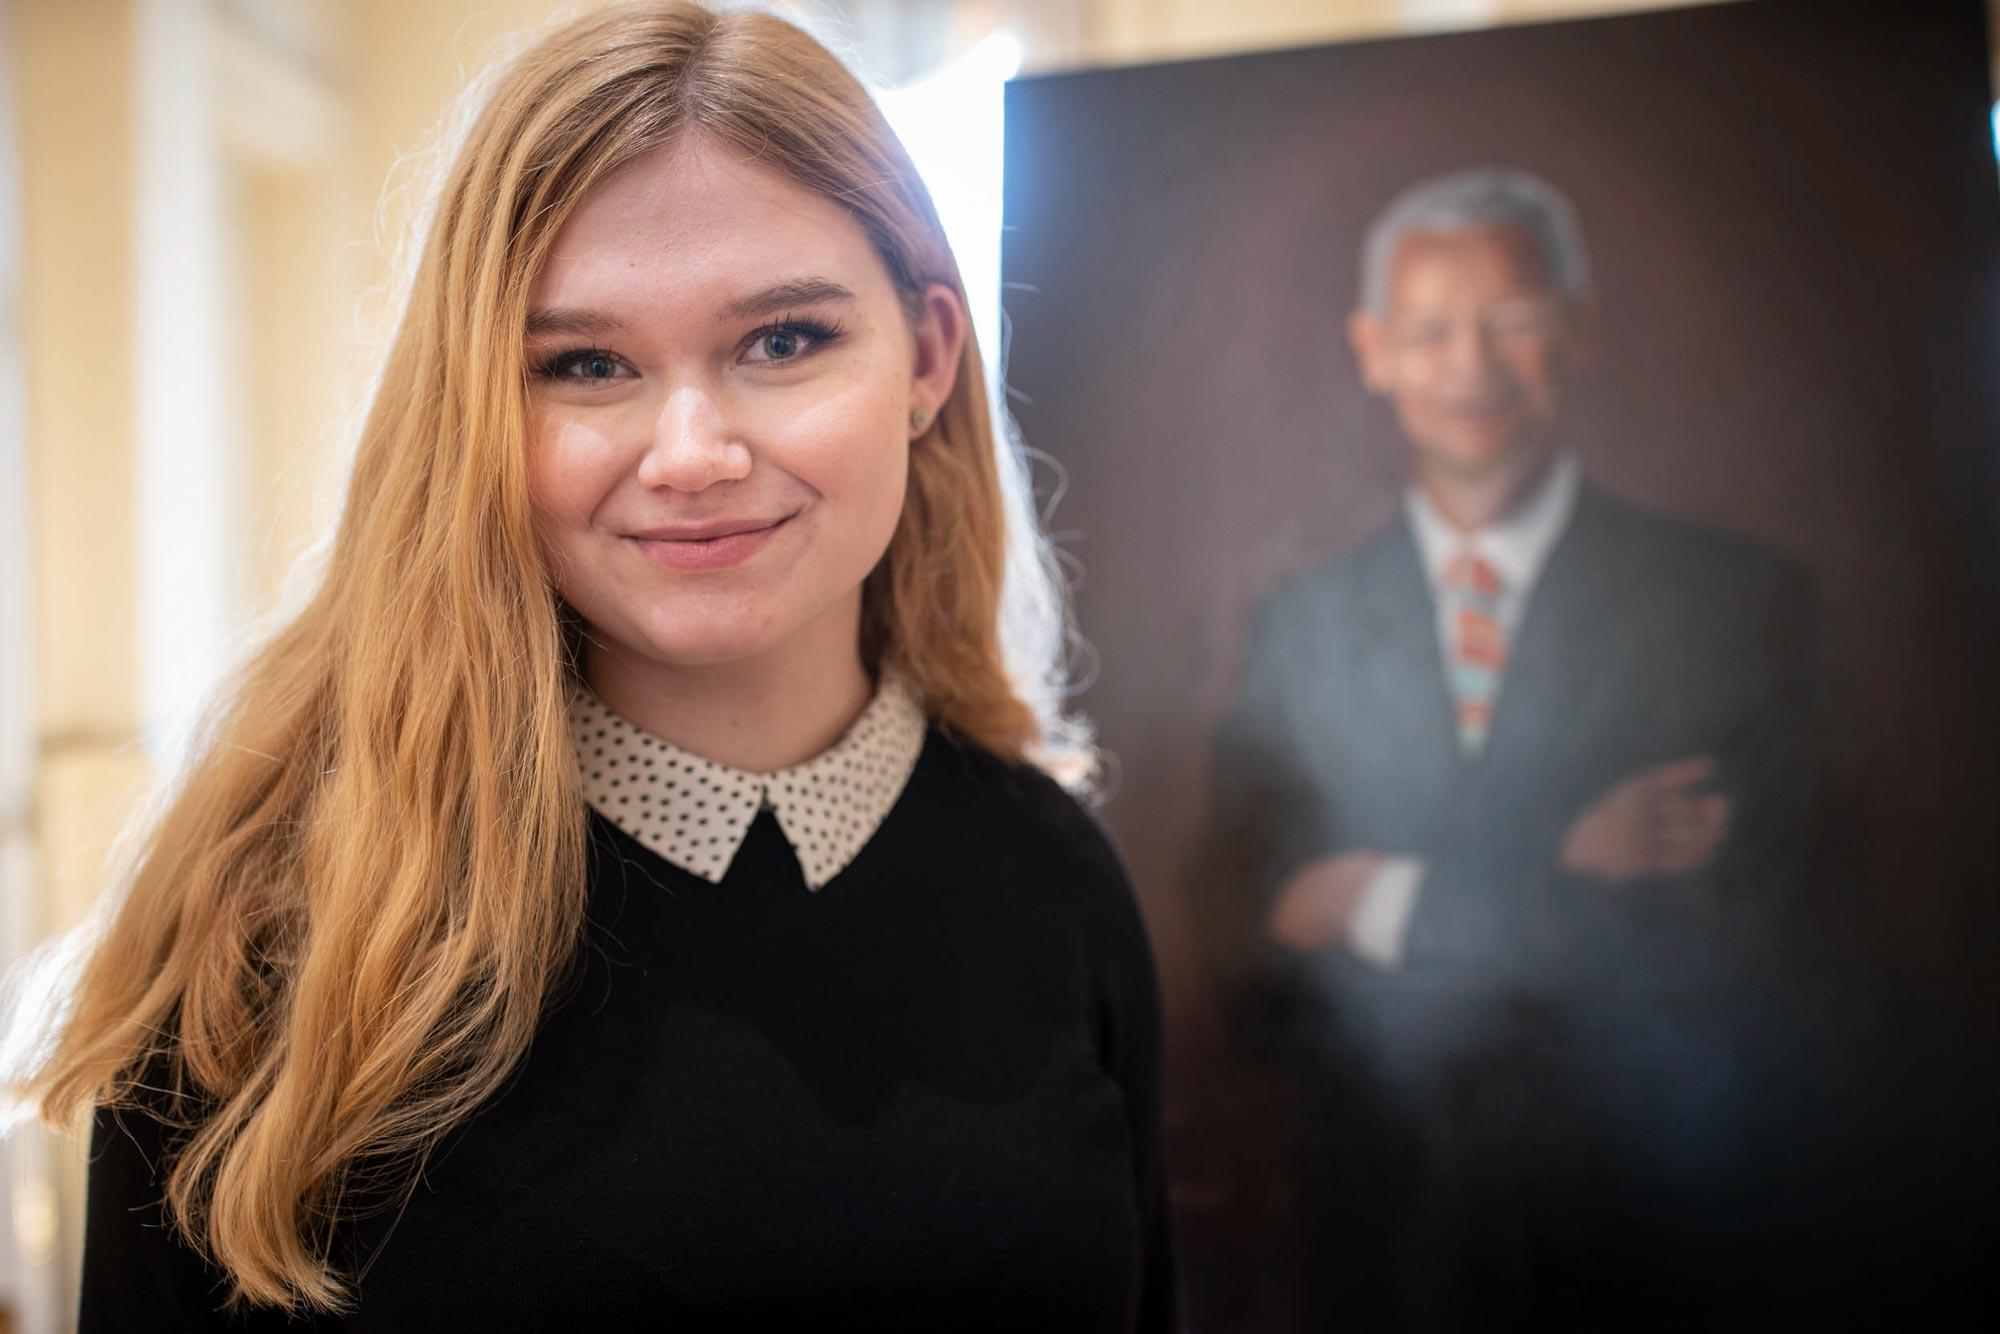 Always looking for what to paint next, second-year student Sophia Kedzierski – a resident of the new Bond House – decided she wanted to commemorate Julian Bond.